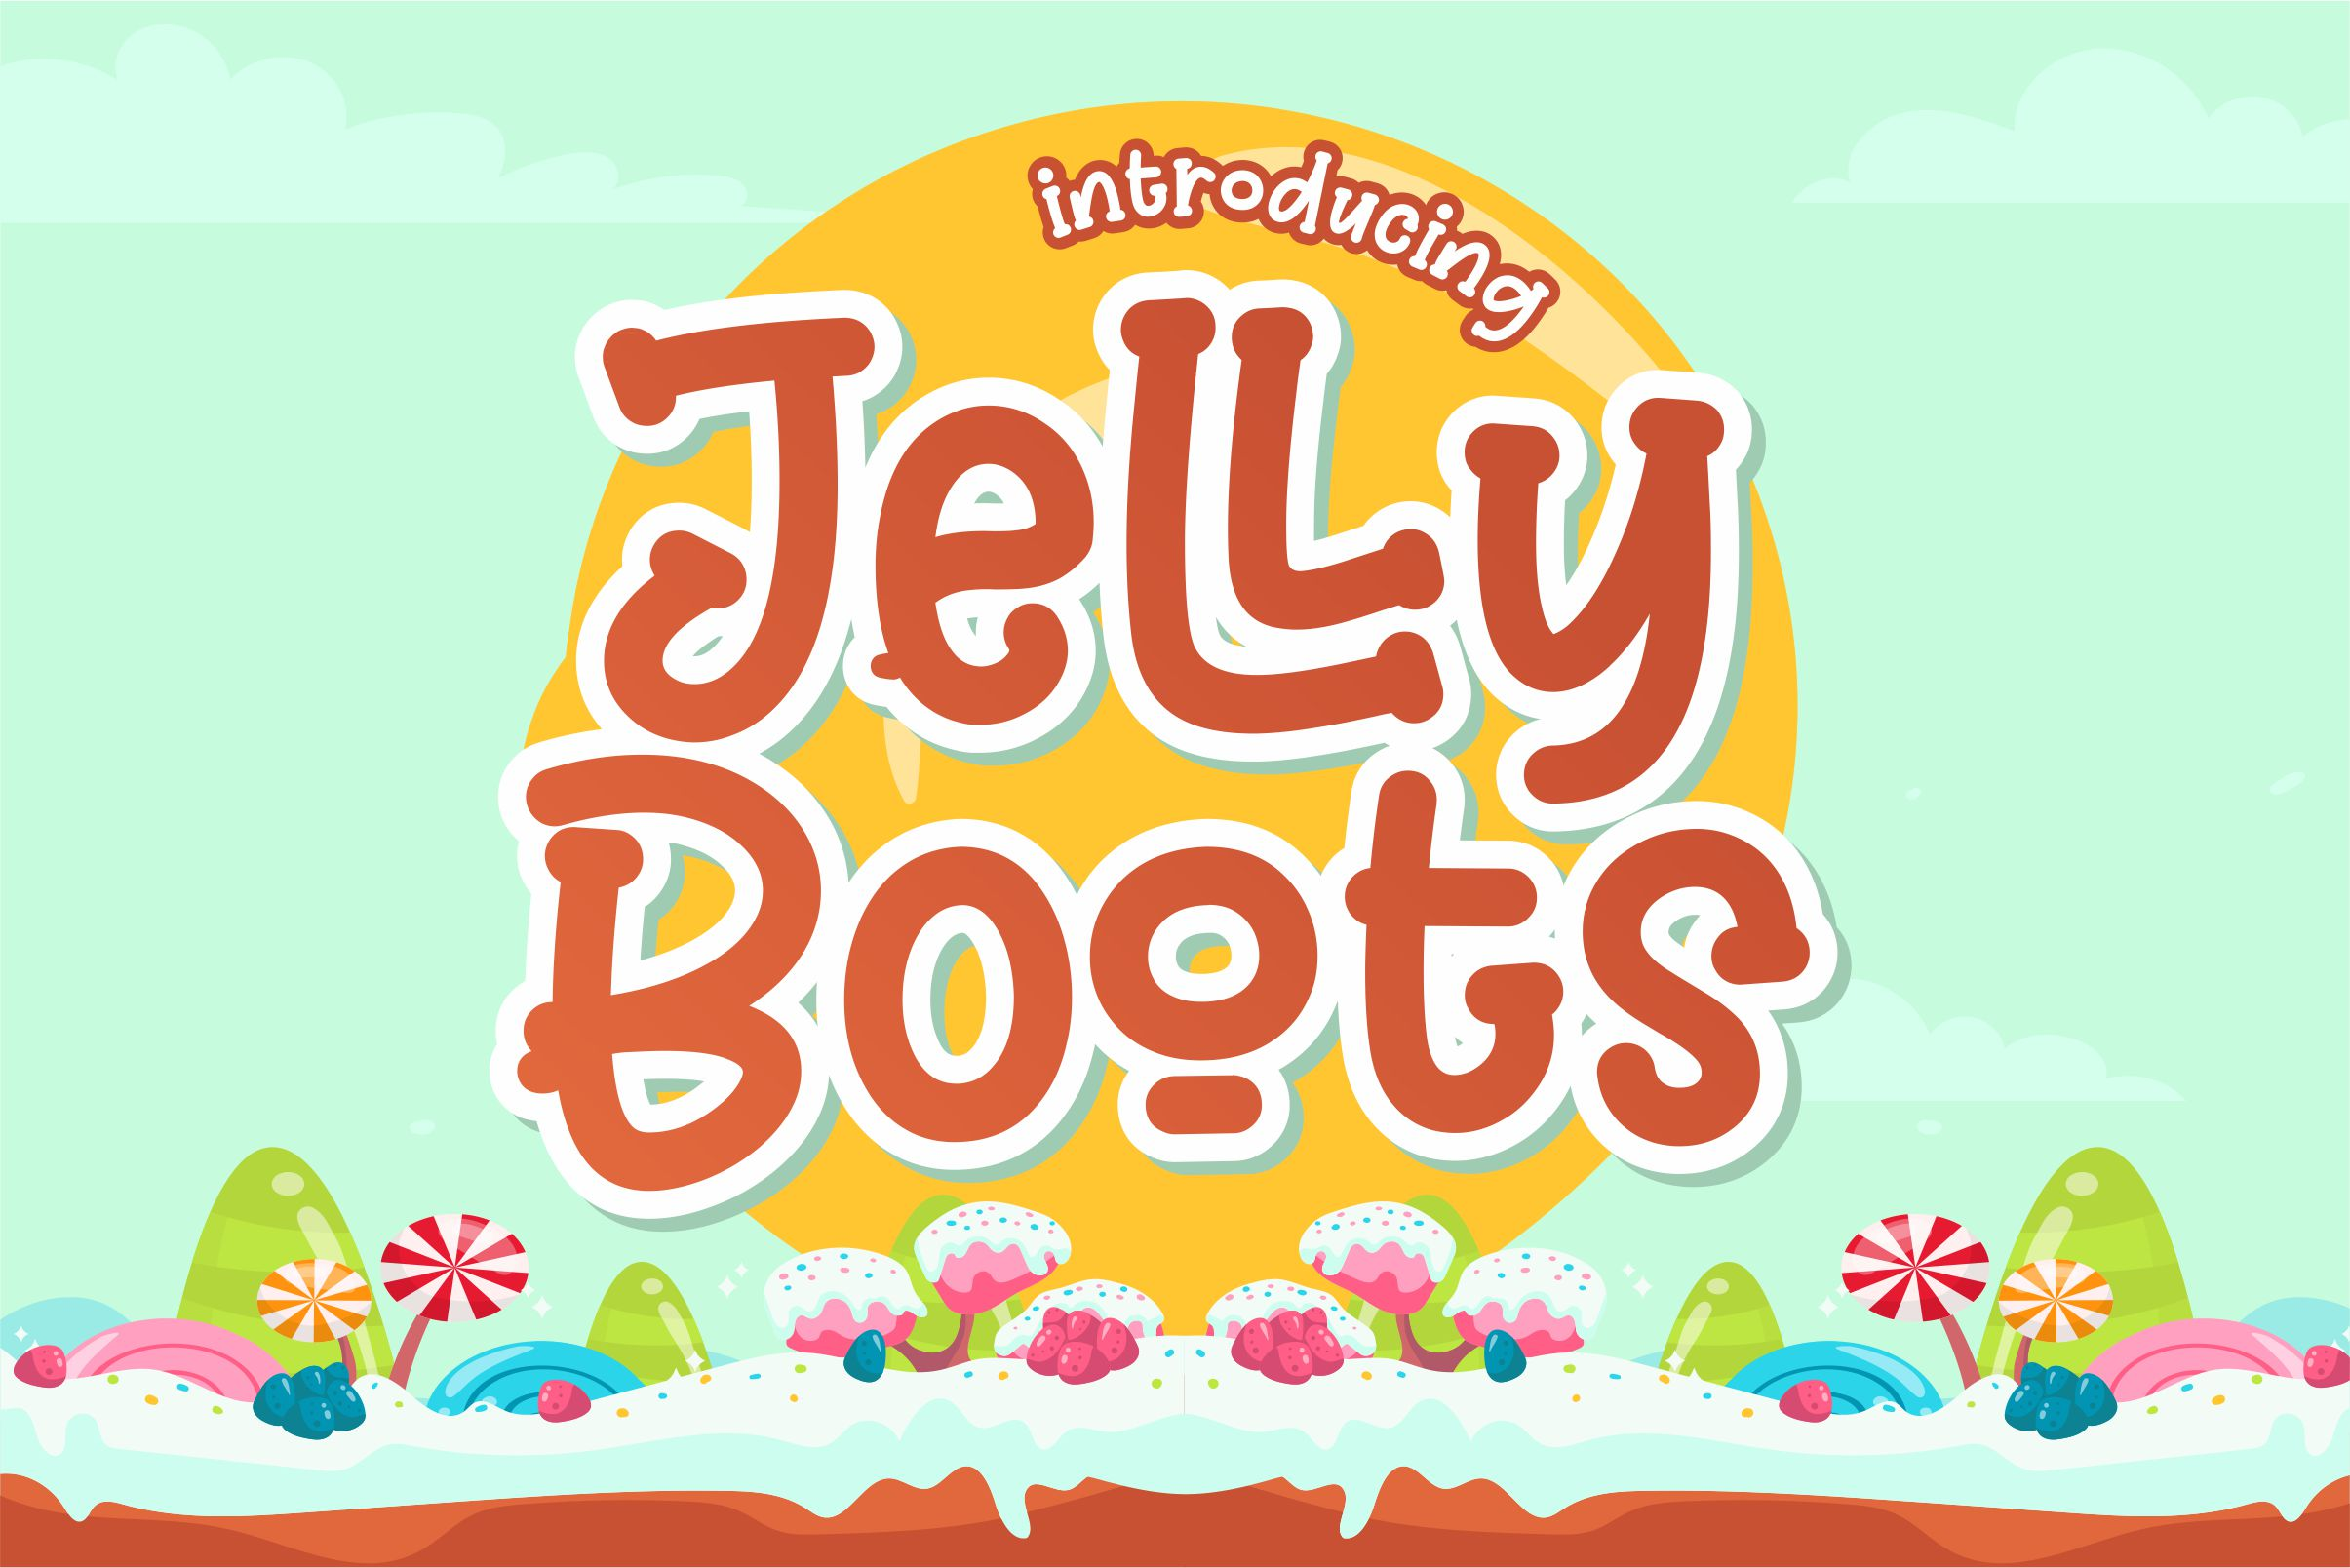 Download Free Jelly Boots Font By Awansenja Type Creative Fabrica for Cricut Explore, Silhouette and other cutting machines.